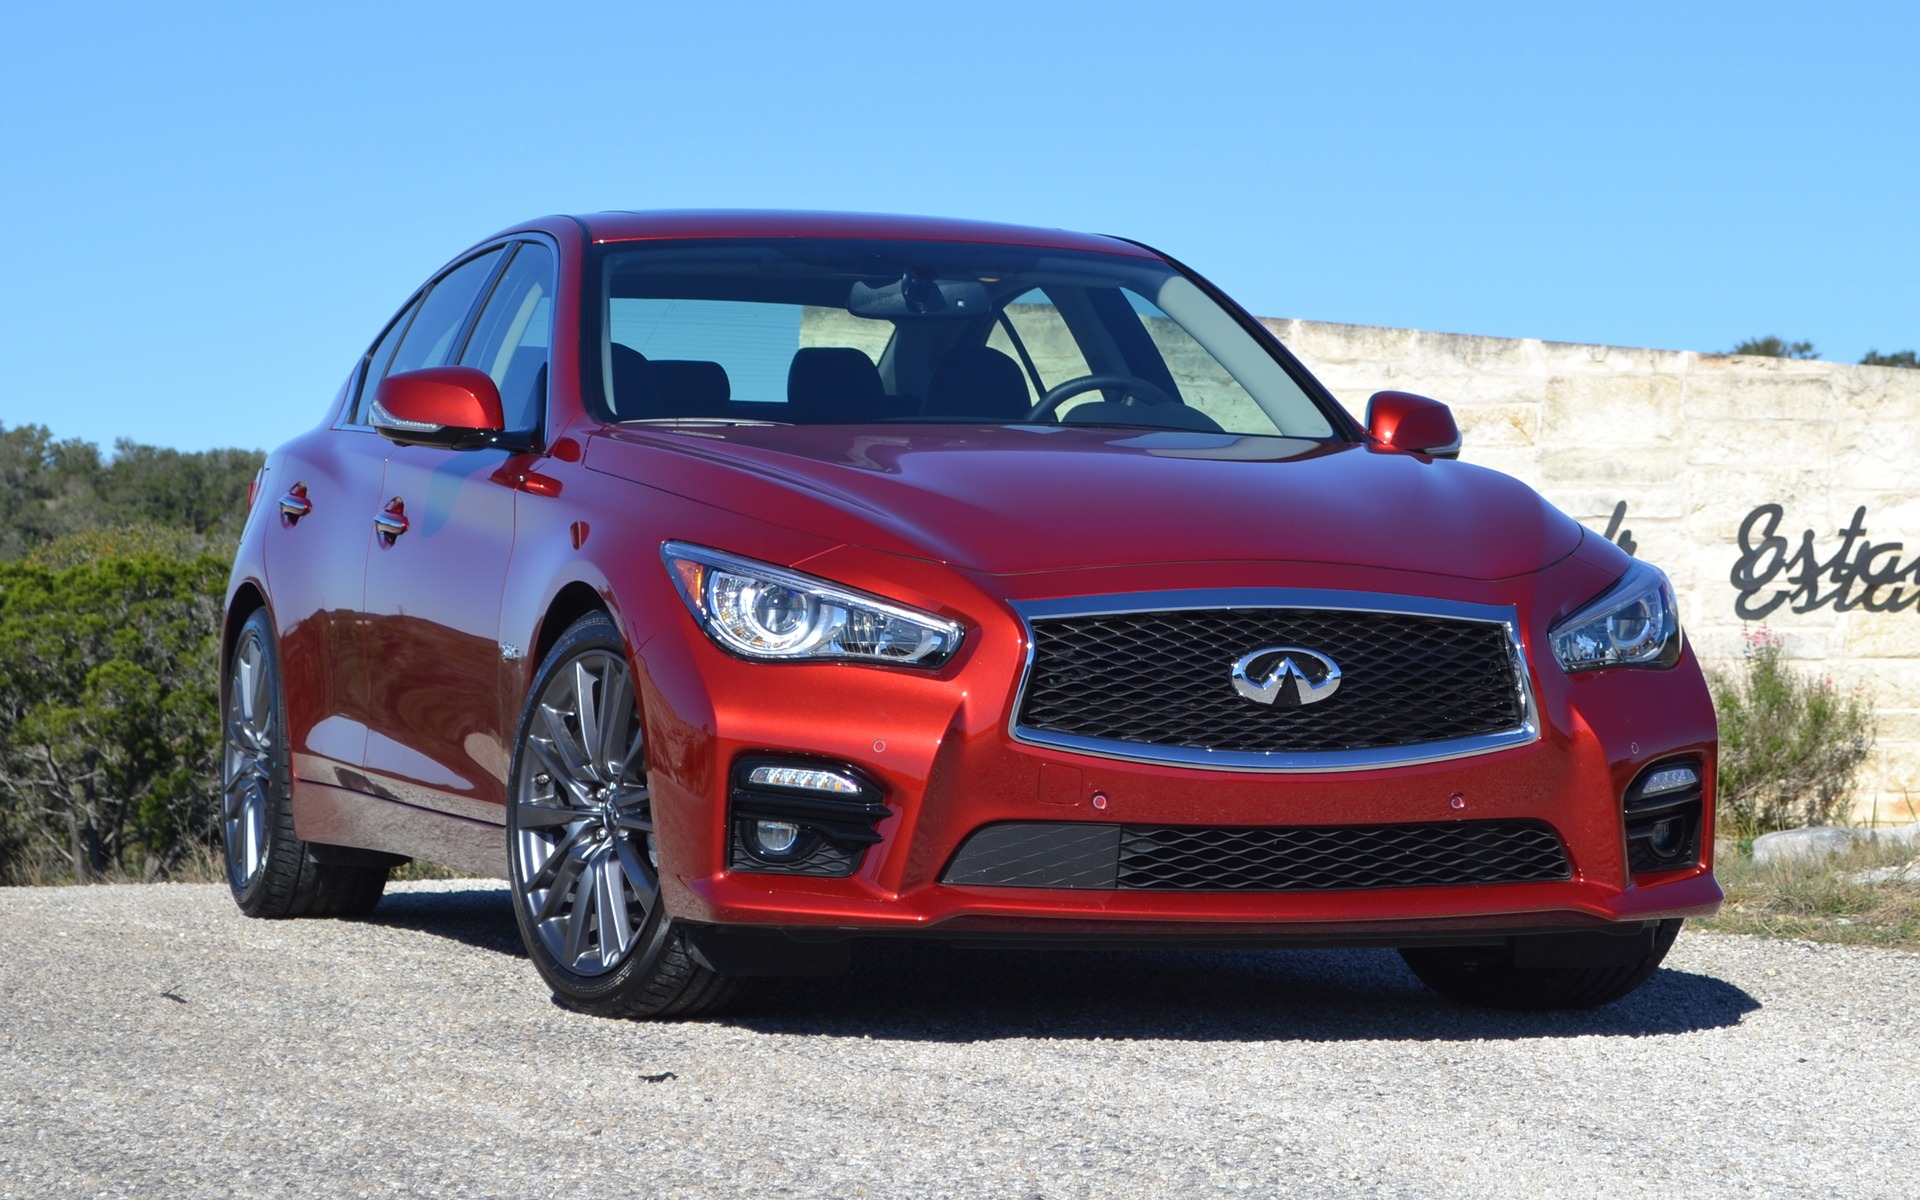 2016 infiniti q50 red sport 400 understated power the car guide. Black Bedroom Furniture Sets. Home Design Ideas